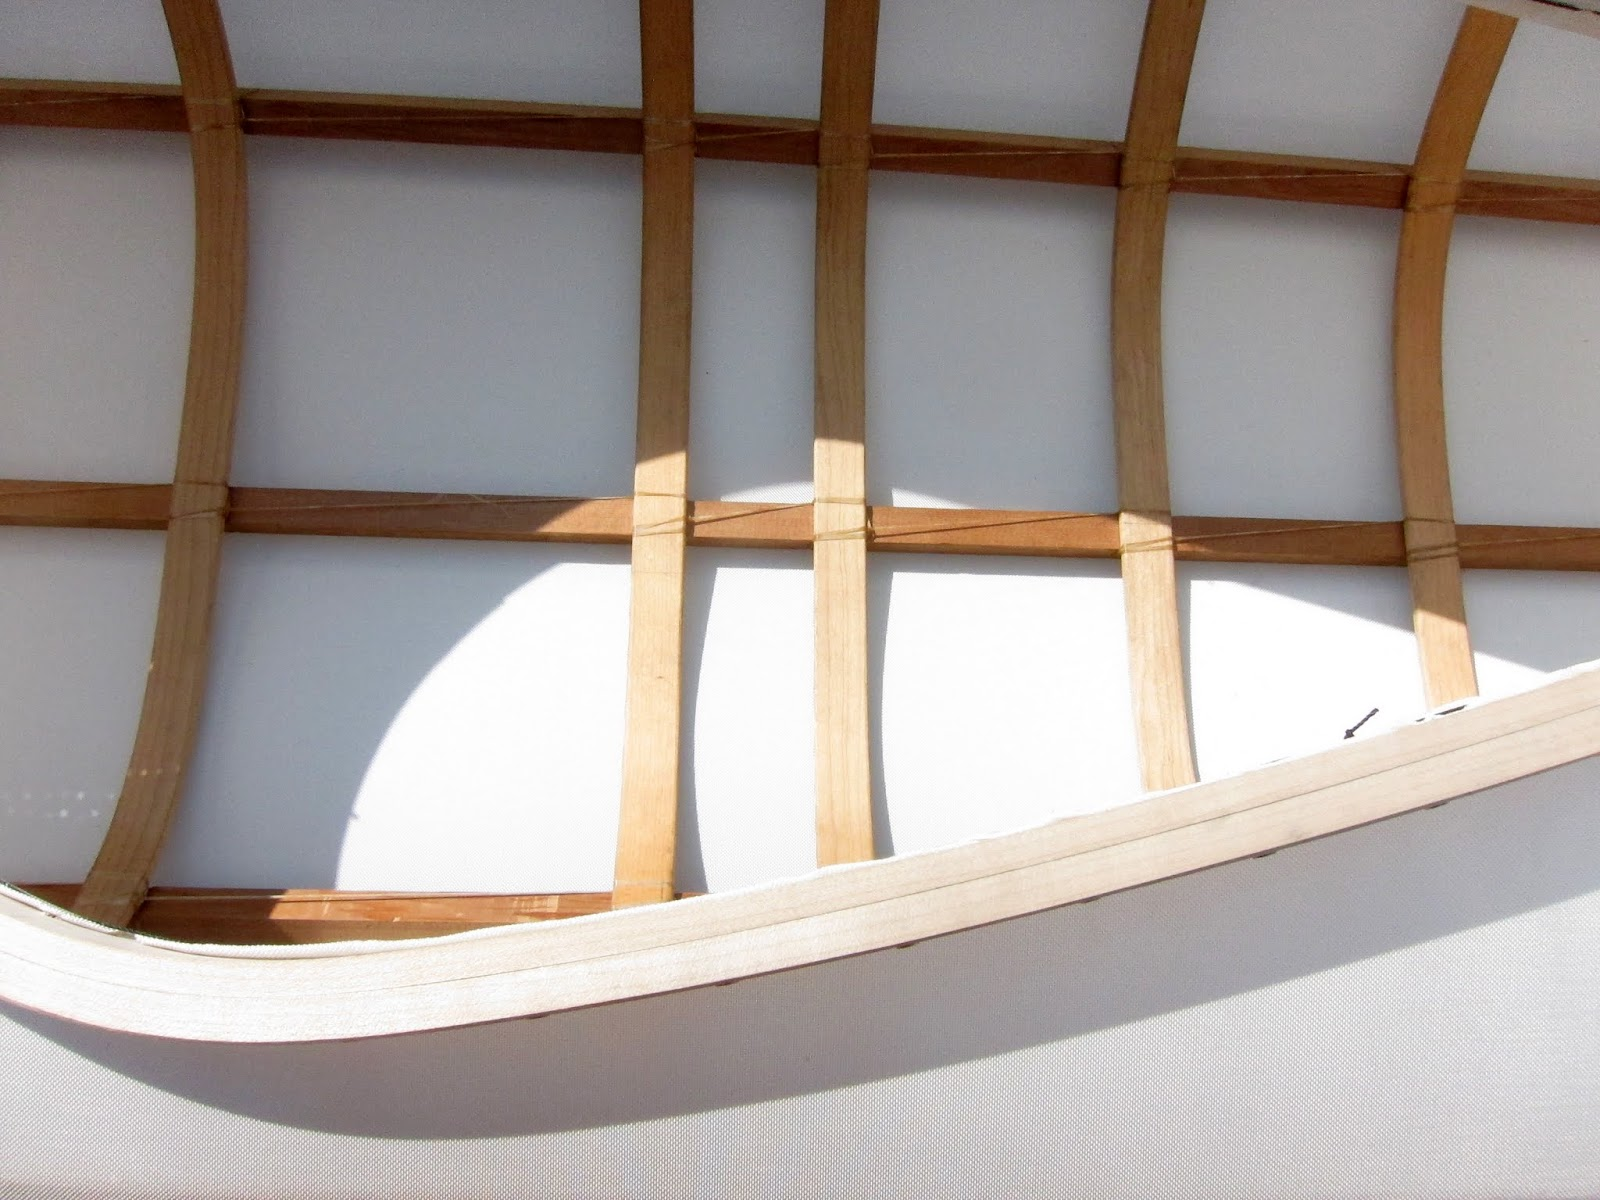 Skin on frame kayak plans - Skin On Frame Construction Is The Way That Kayaks Were Originally Built In The Arctic Waters Of Their Origin You Make A Wooden Skeleton That Is A Framework